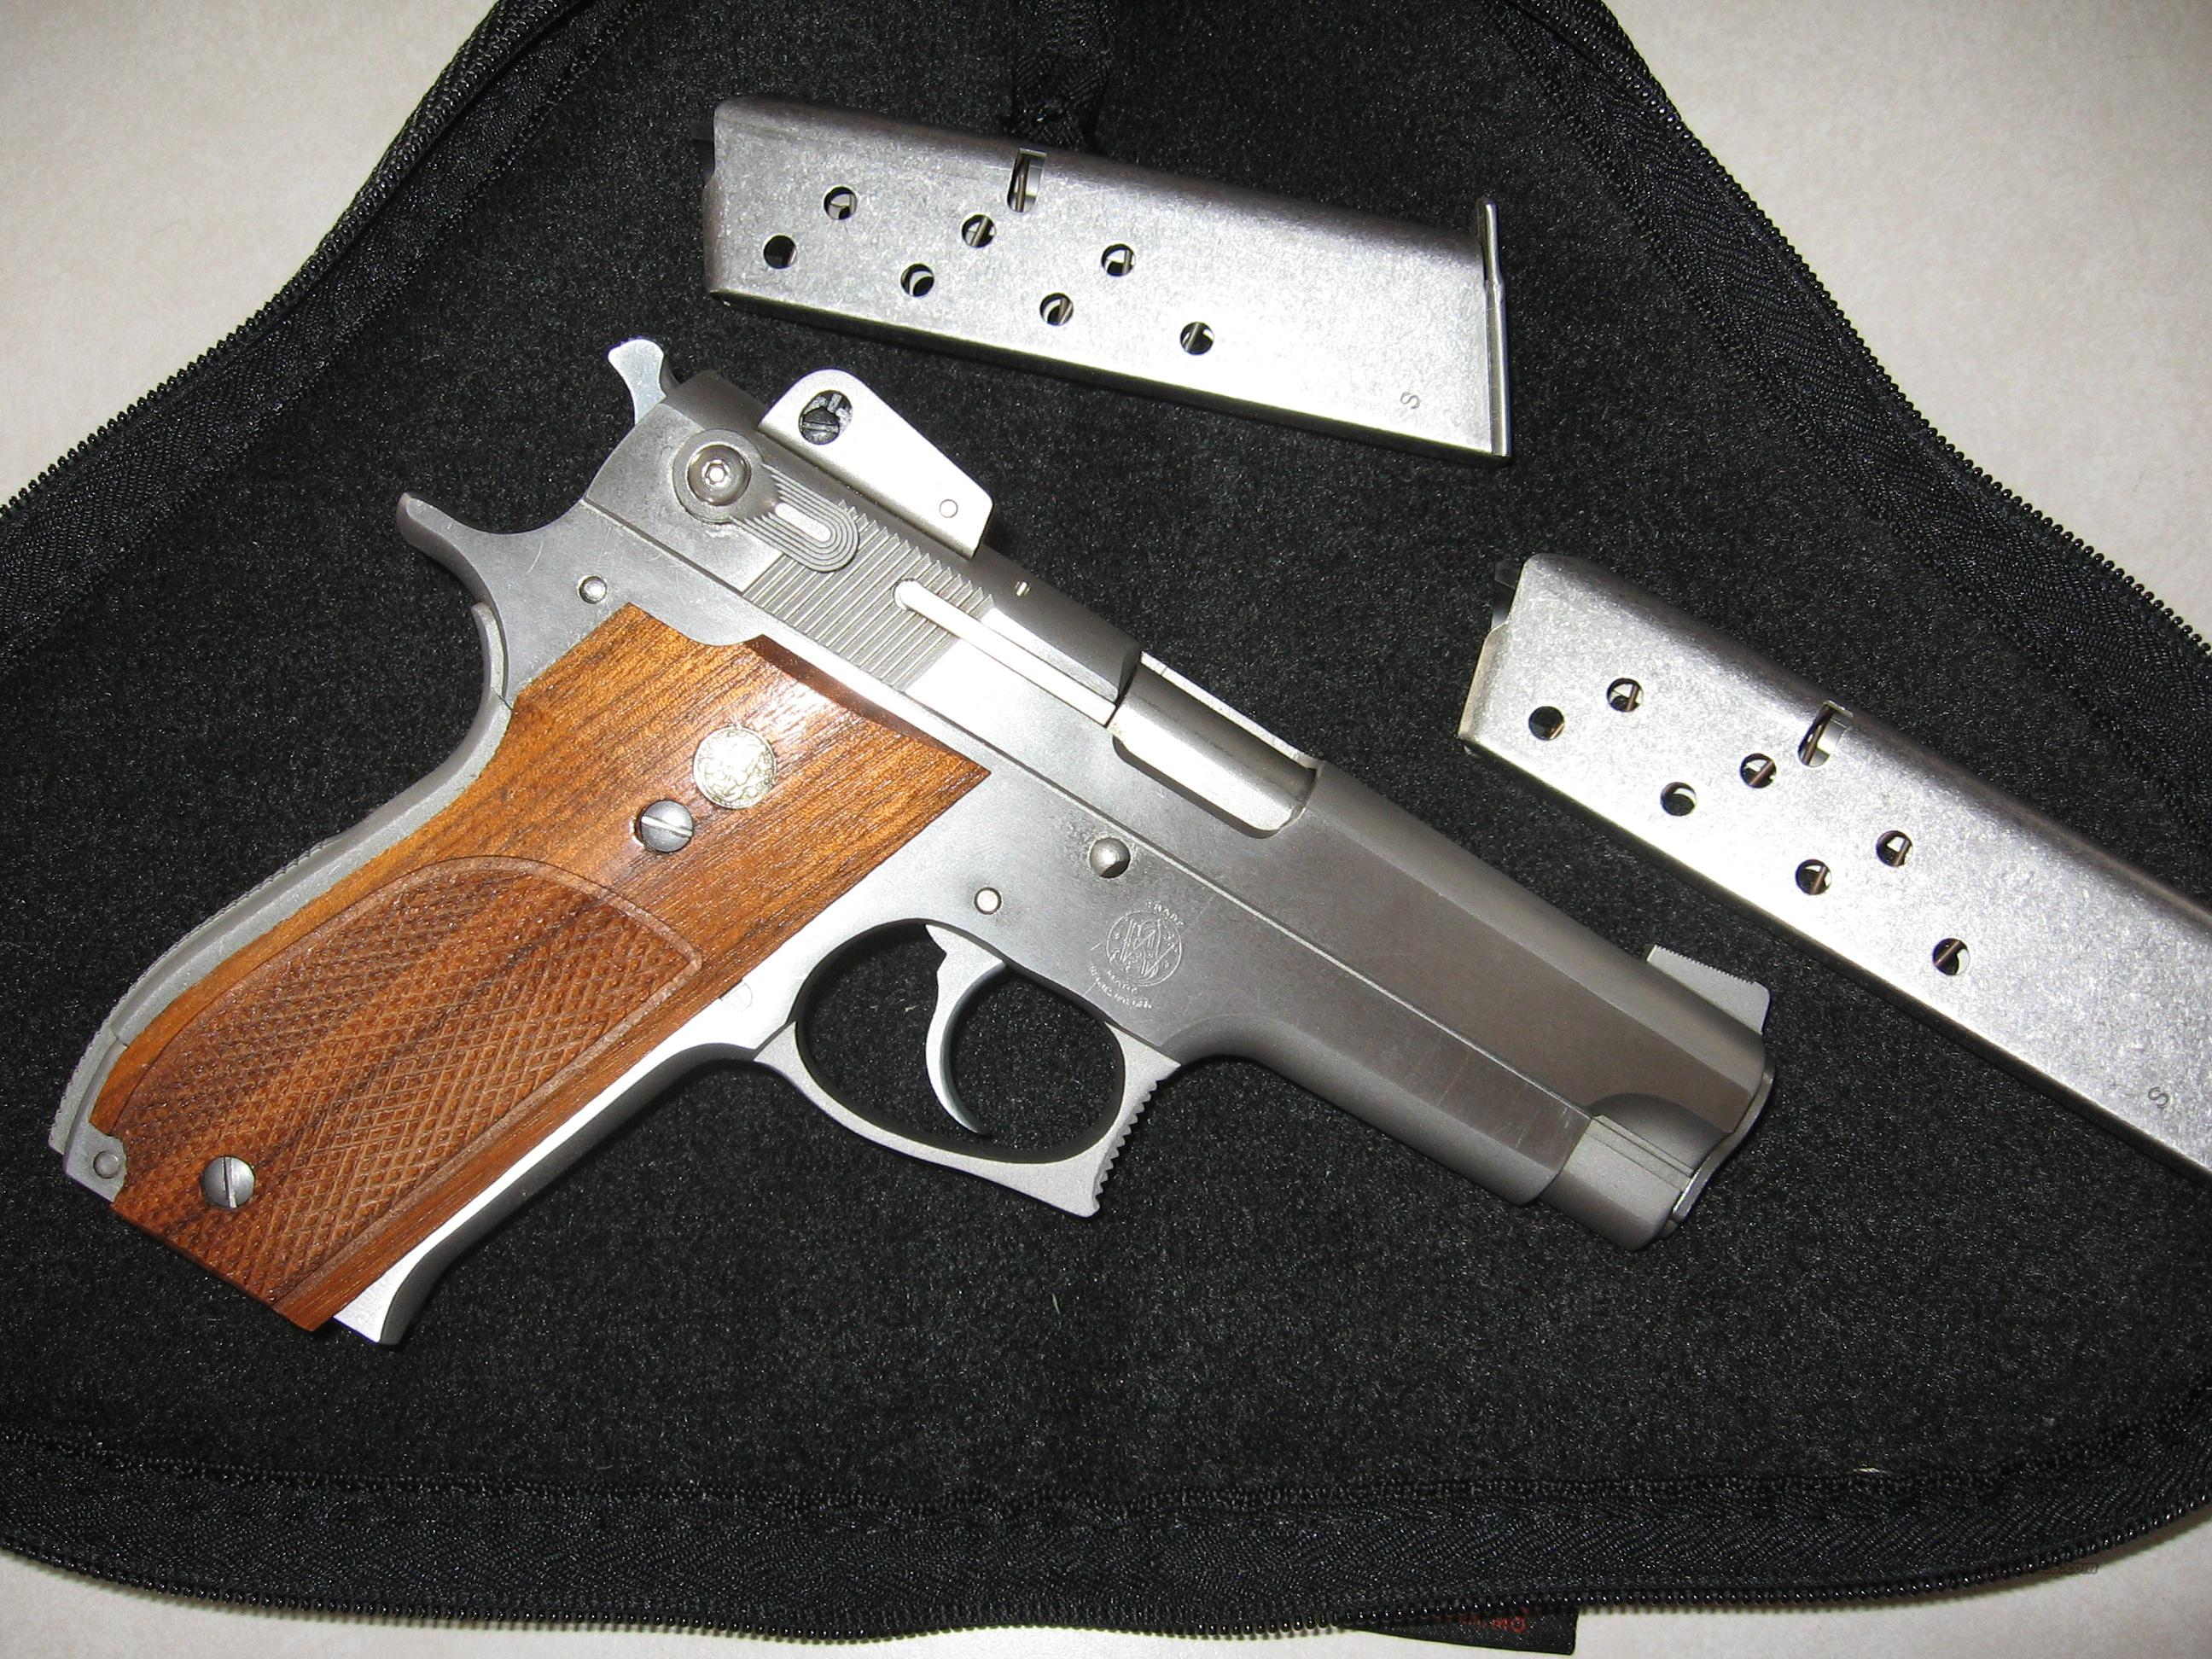 """ SMITH & WESSON MODEL 639 ""  Guns > Pistols > Smith & Wesson Pistols - Autos > Steel Frame"